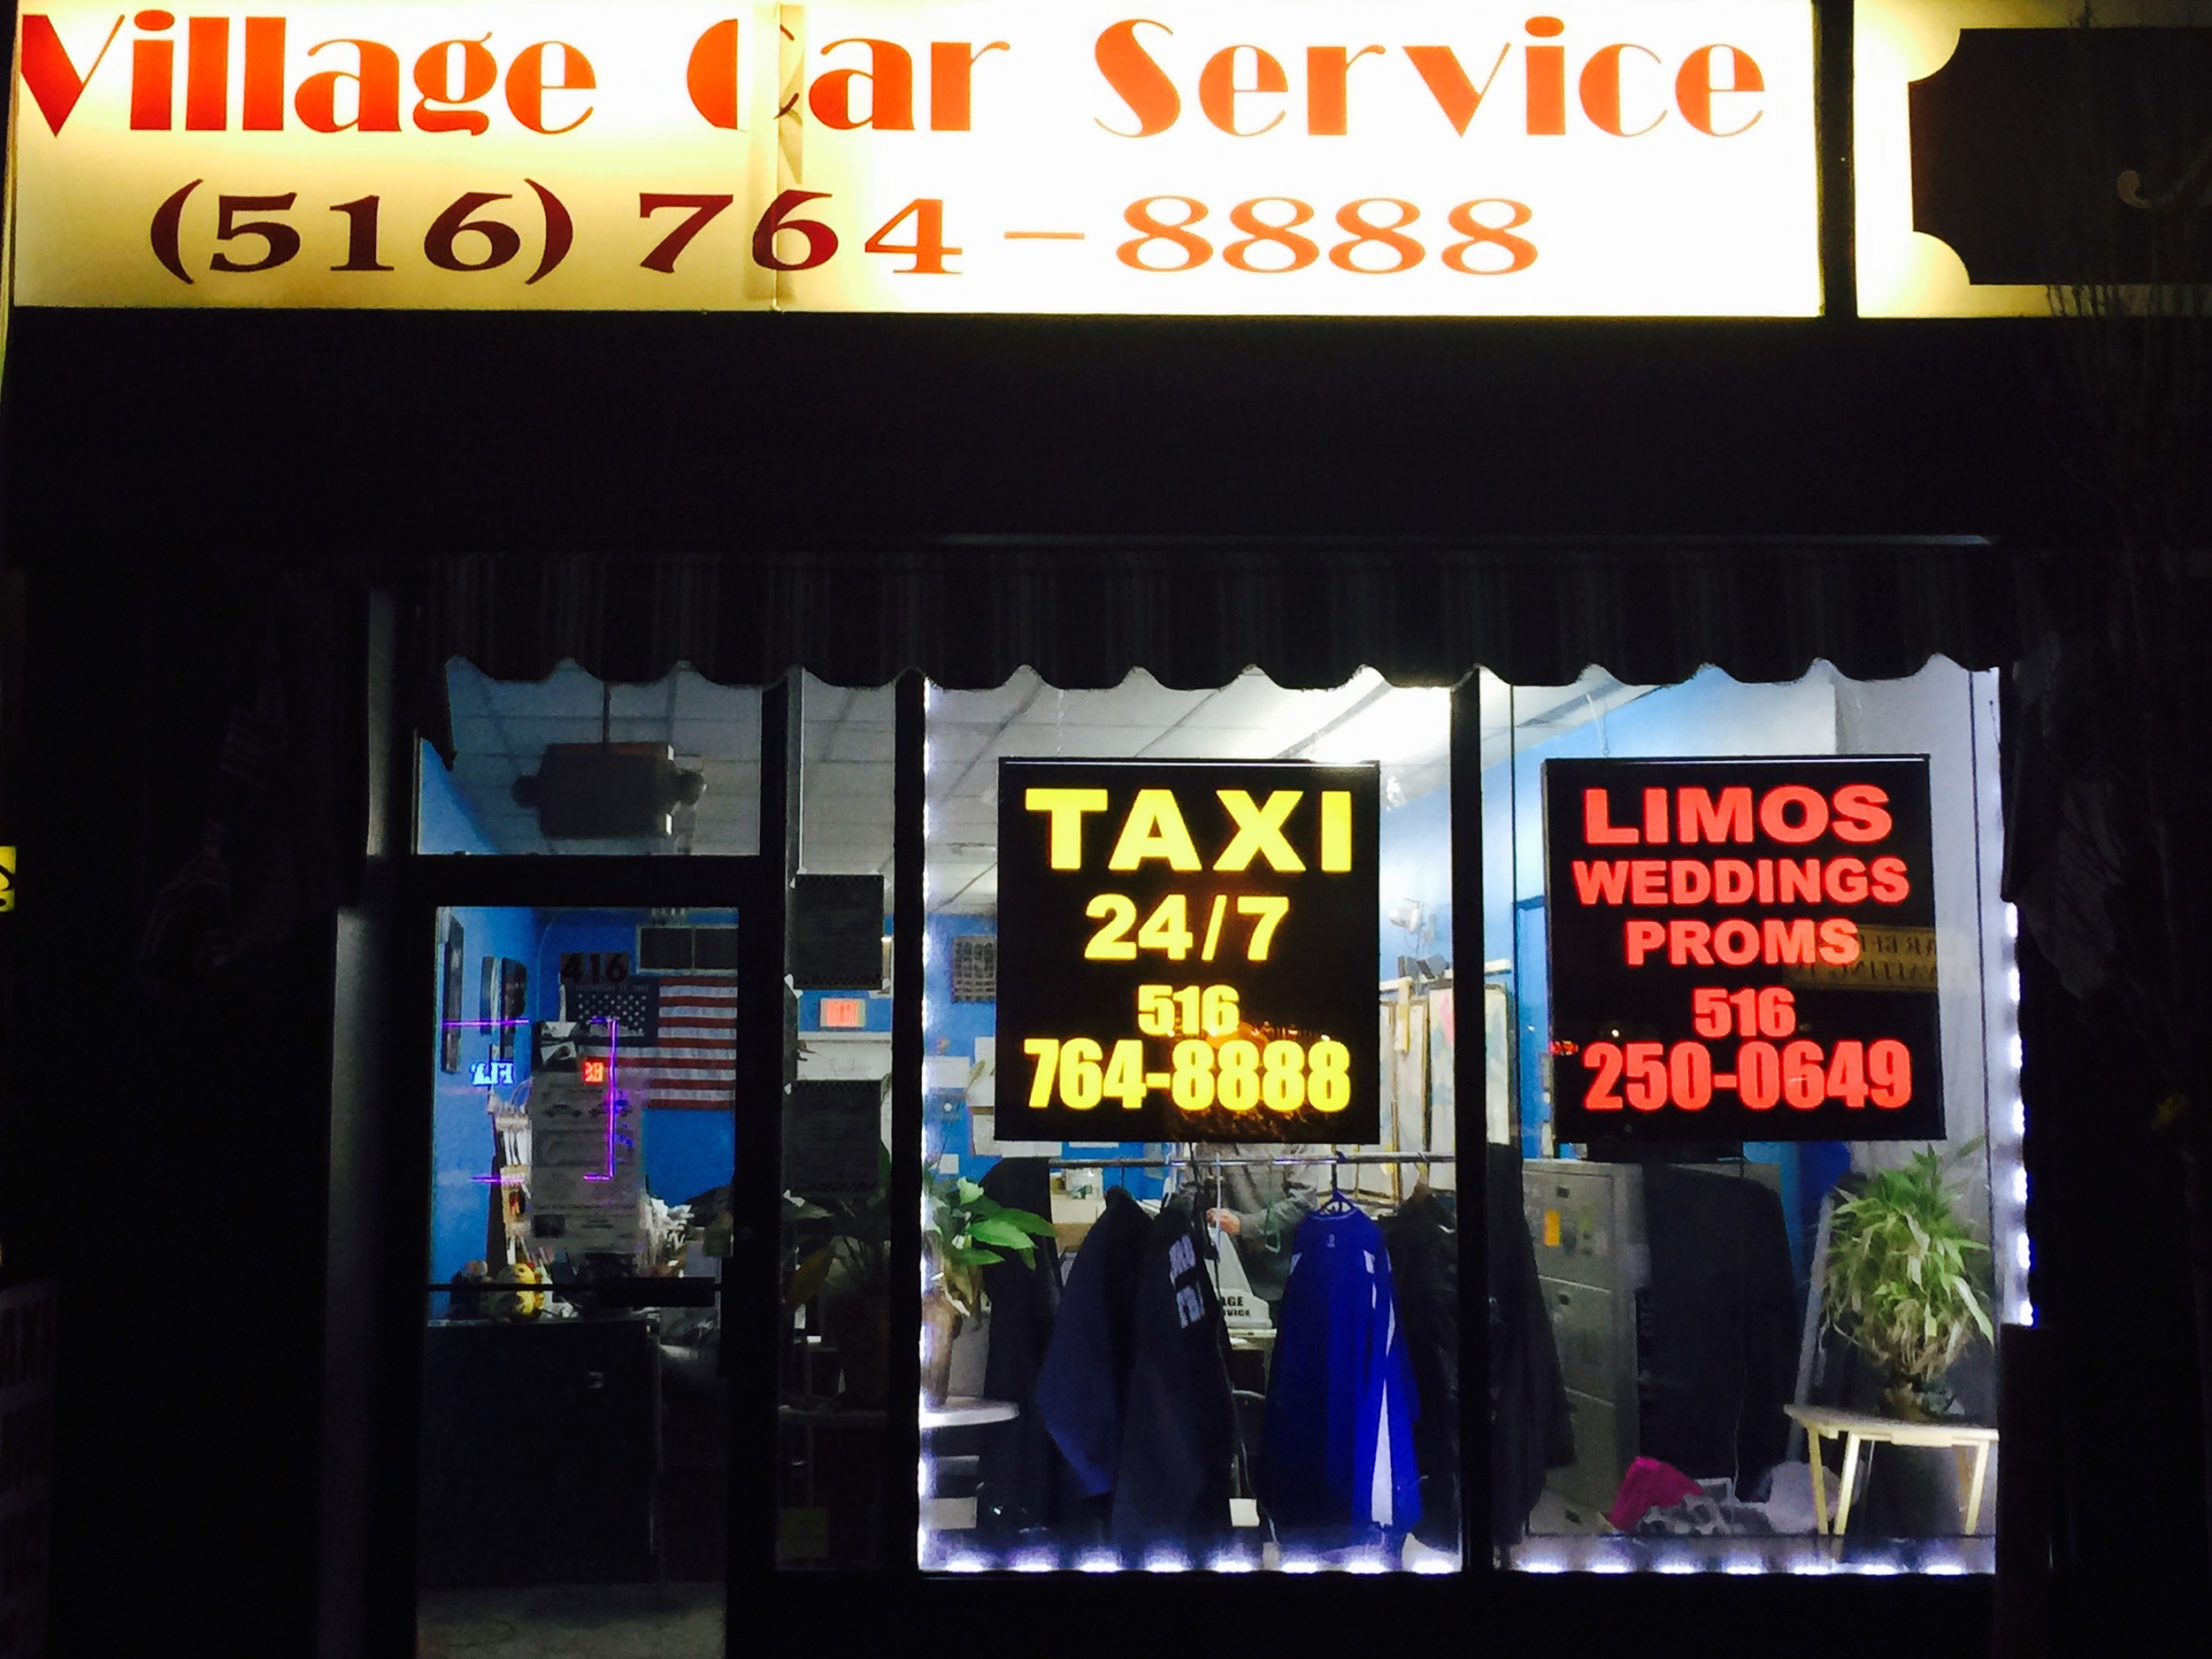 Village Car Service owner David O'Neill voiced his concerns about ride-sharing coming to Long Island. The program went into effect on June 29.